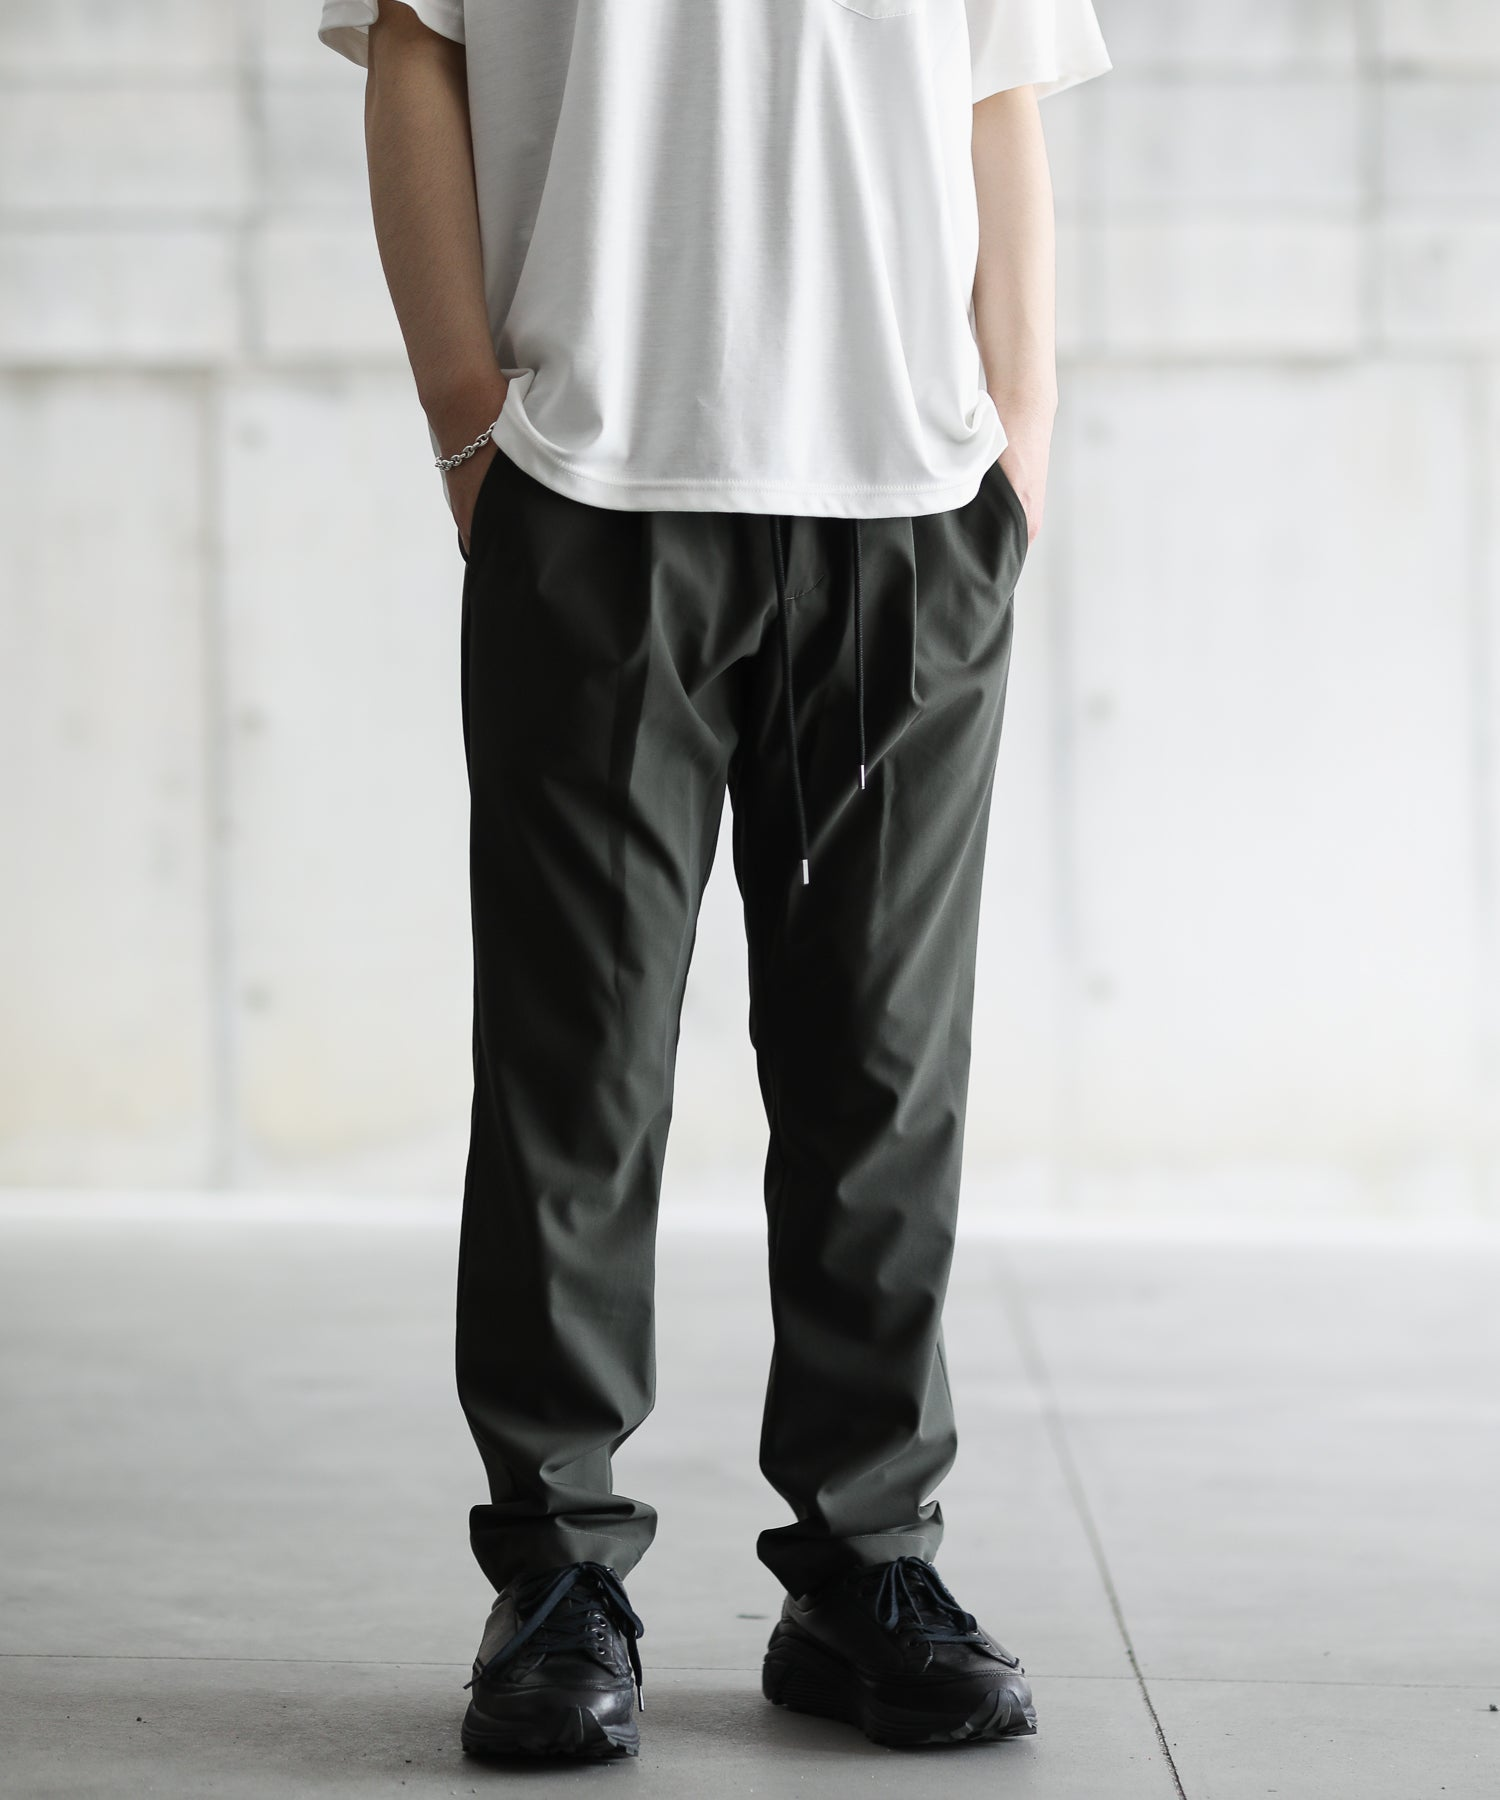 【ATTACHMENT】CO/PE PANAMA CLOTH 1TUCK PNT